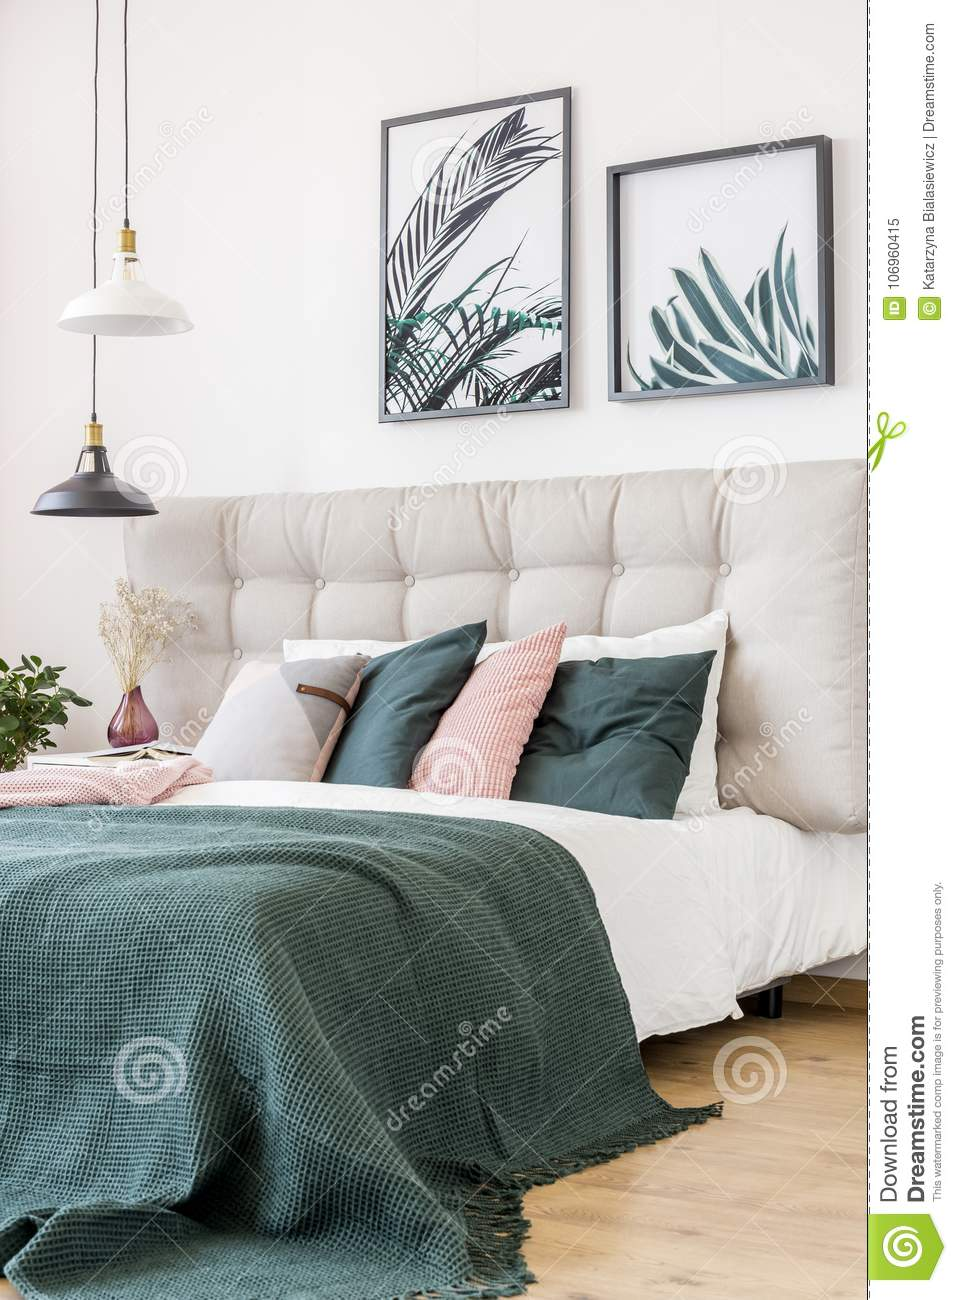 Floral Bedroom With Leaves Posters Stock Image Image Of Pastel Interior 106960415